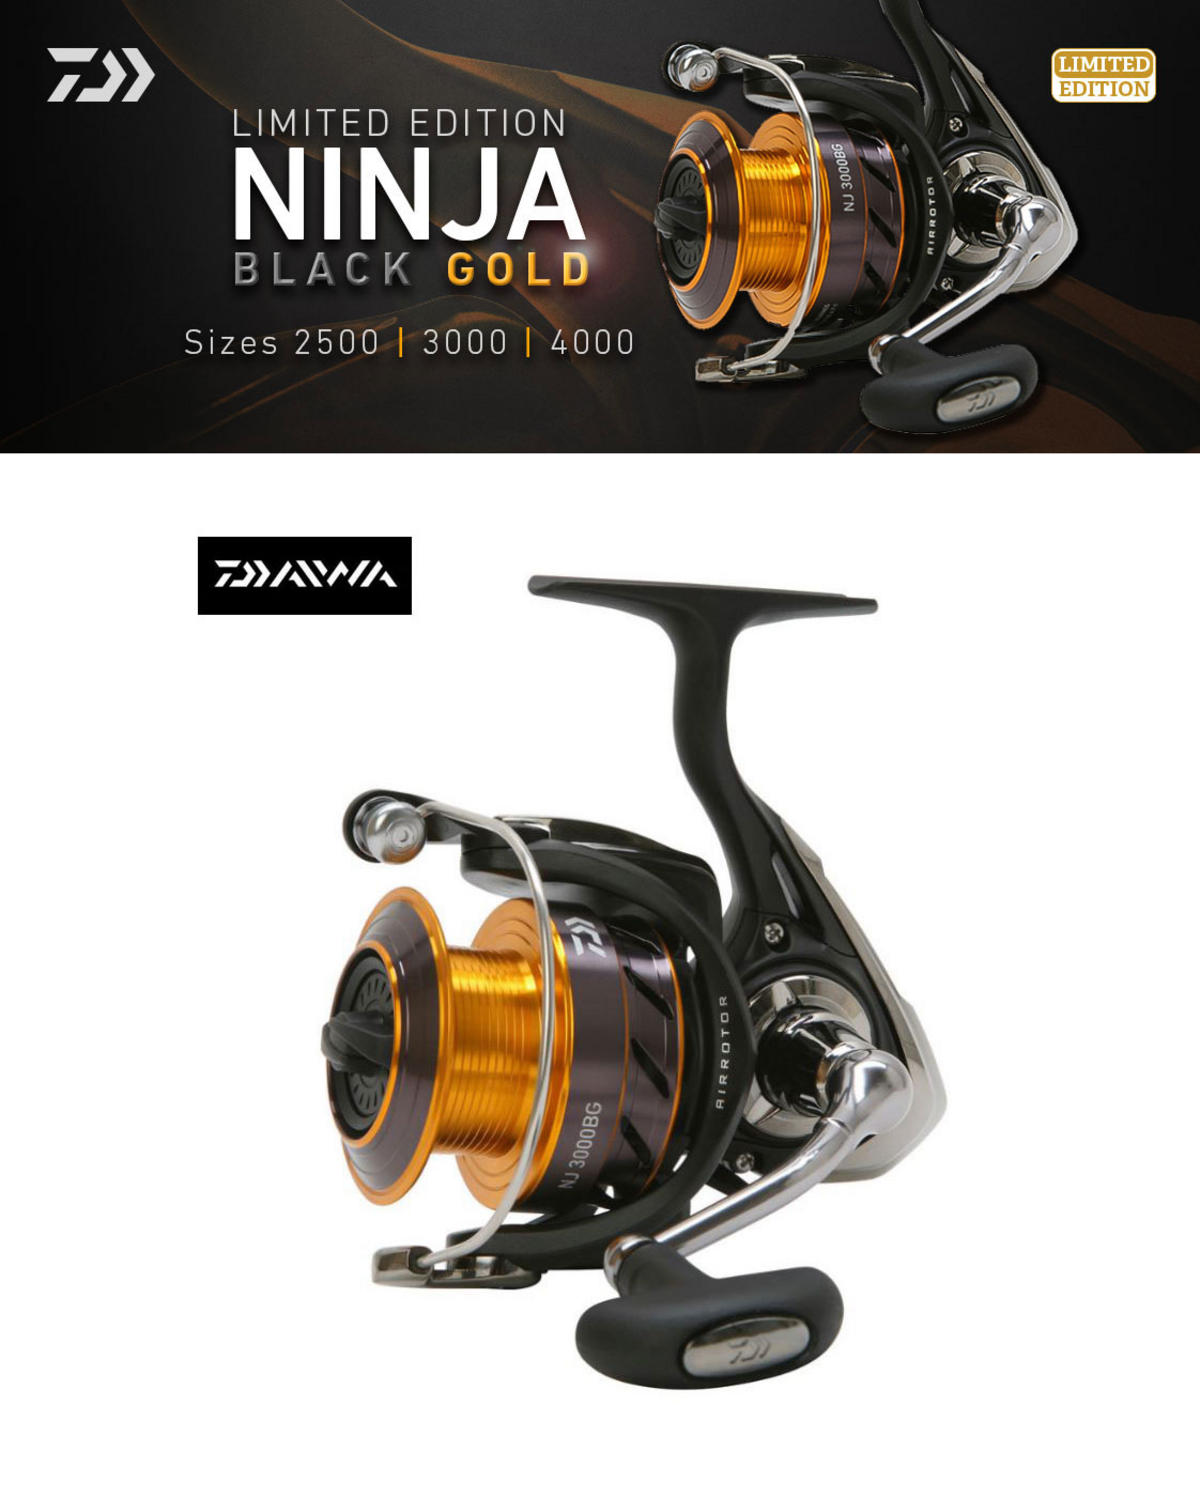 New Daiwa Ninja Black & Gold Limited Edition Fishing Reel - All Models